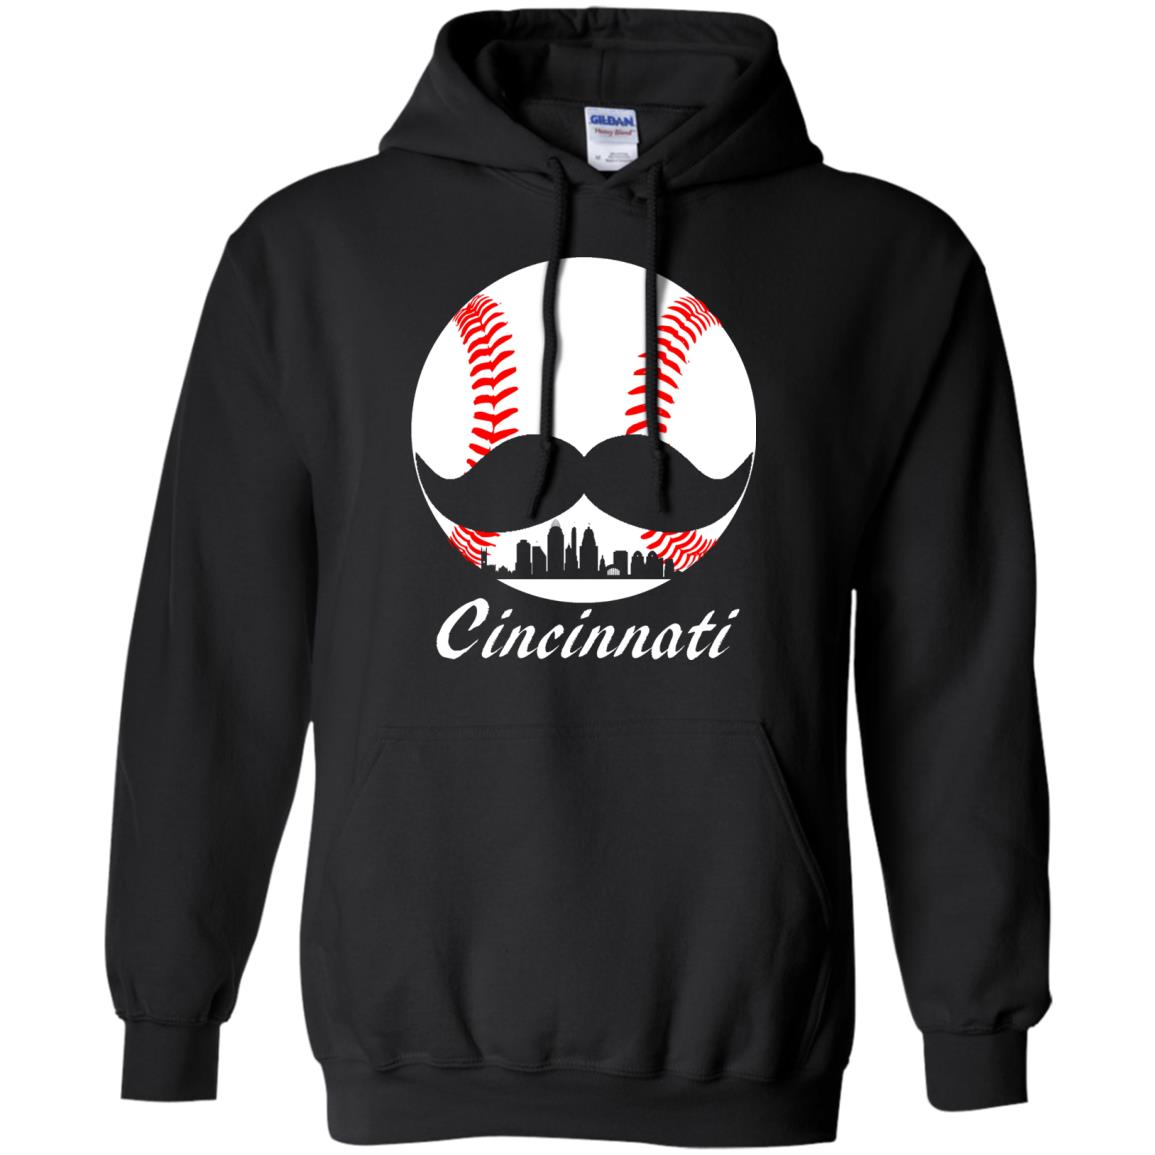 Cincinnati Baseball Shirt  Mustache and Skyline design